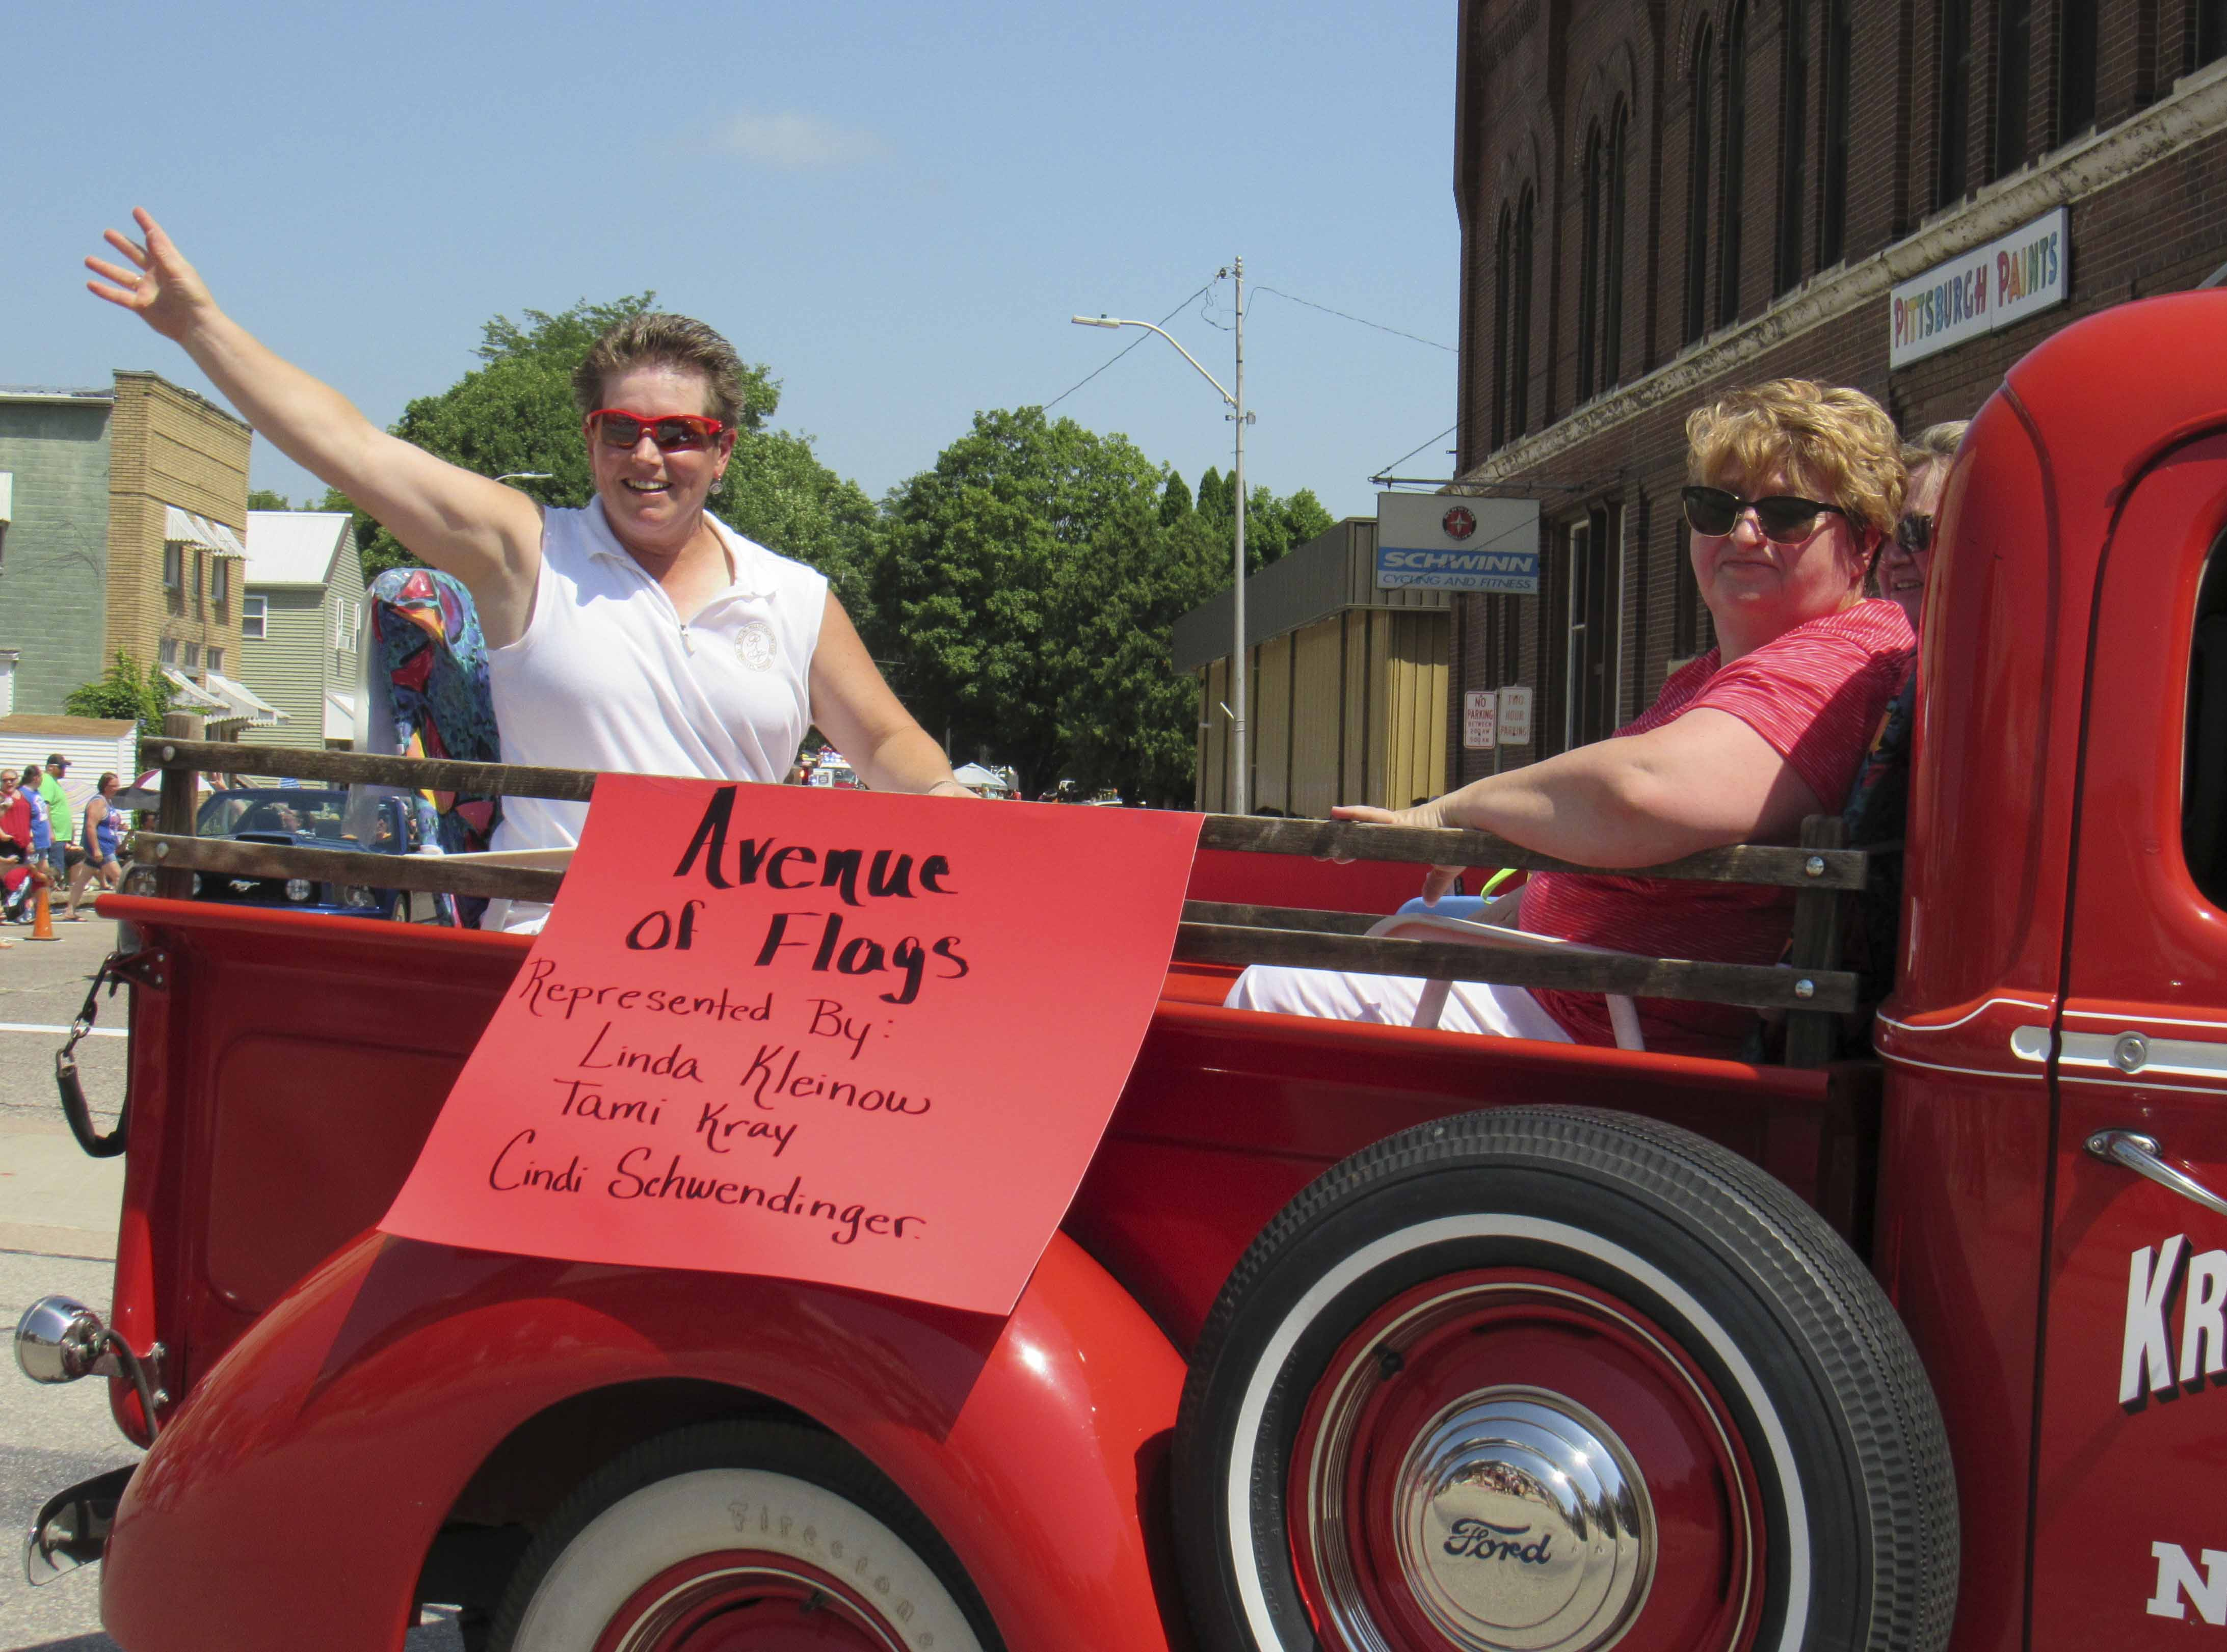 One of this year's parade grand marshals included the Avenue of Flags, represented by Linda Kleinow, Tami Kray (not pictured) and Cindi Schwendinger.